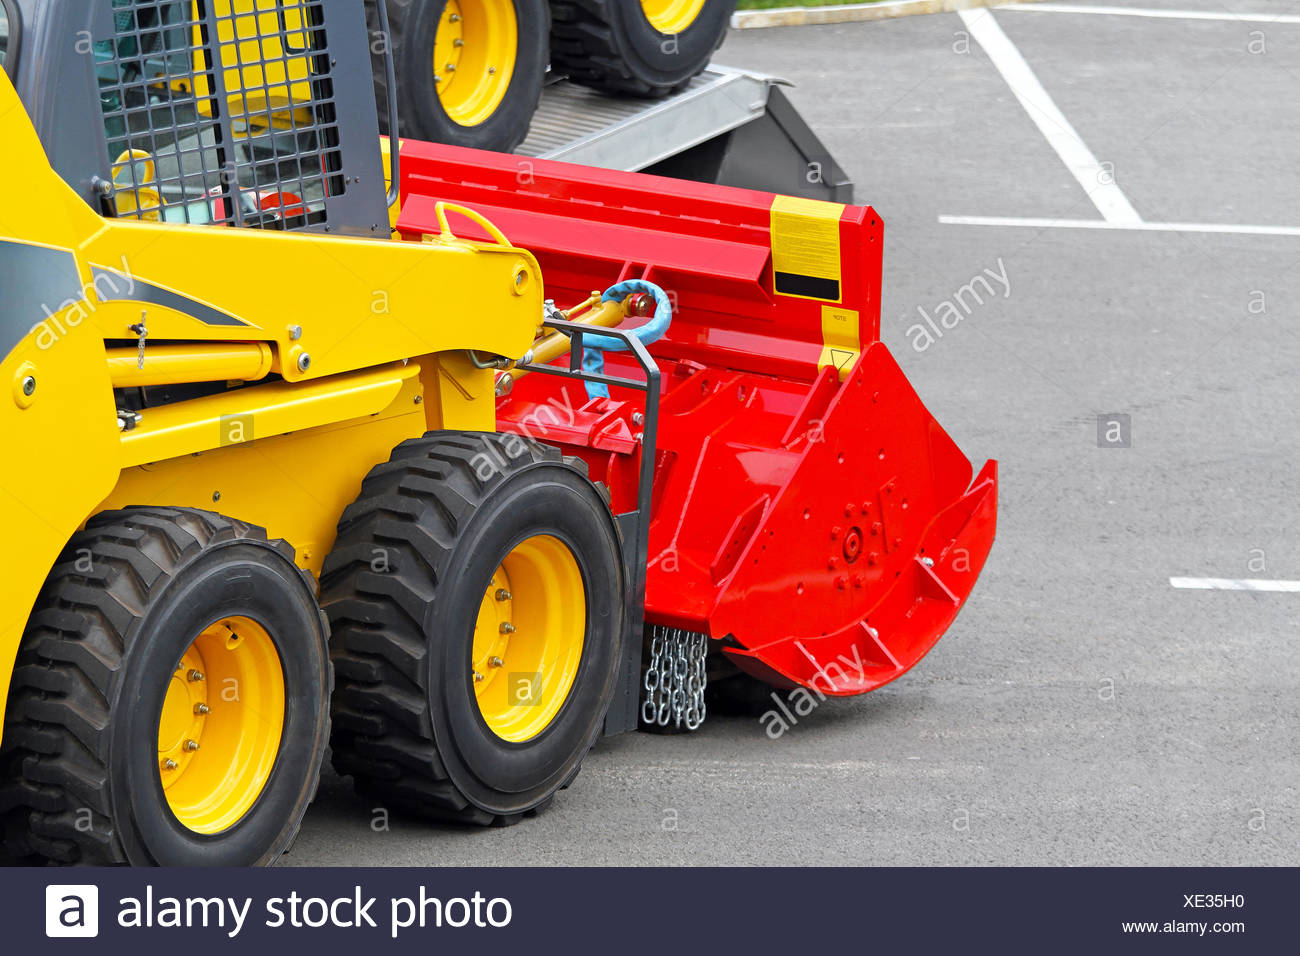 Skid steer attachment Stock Photo